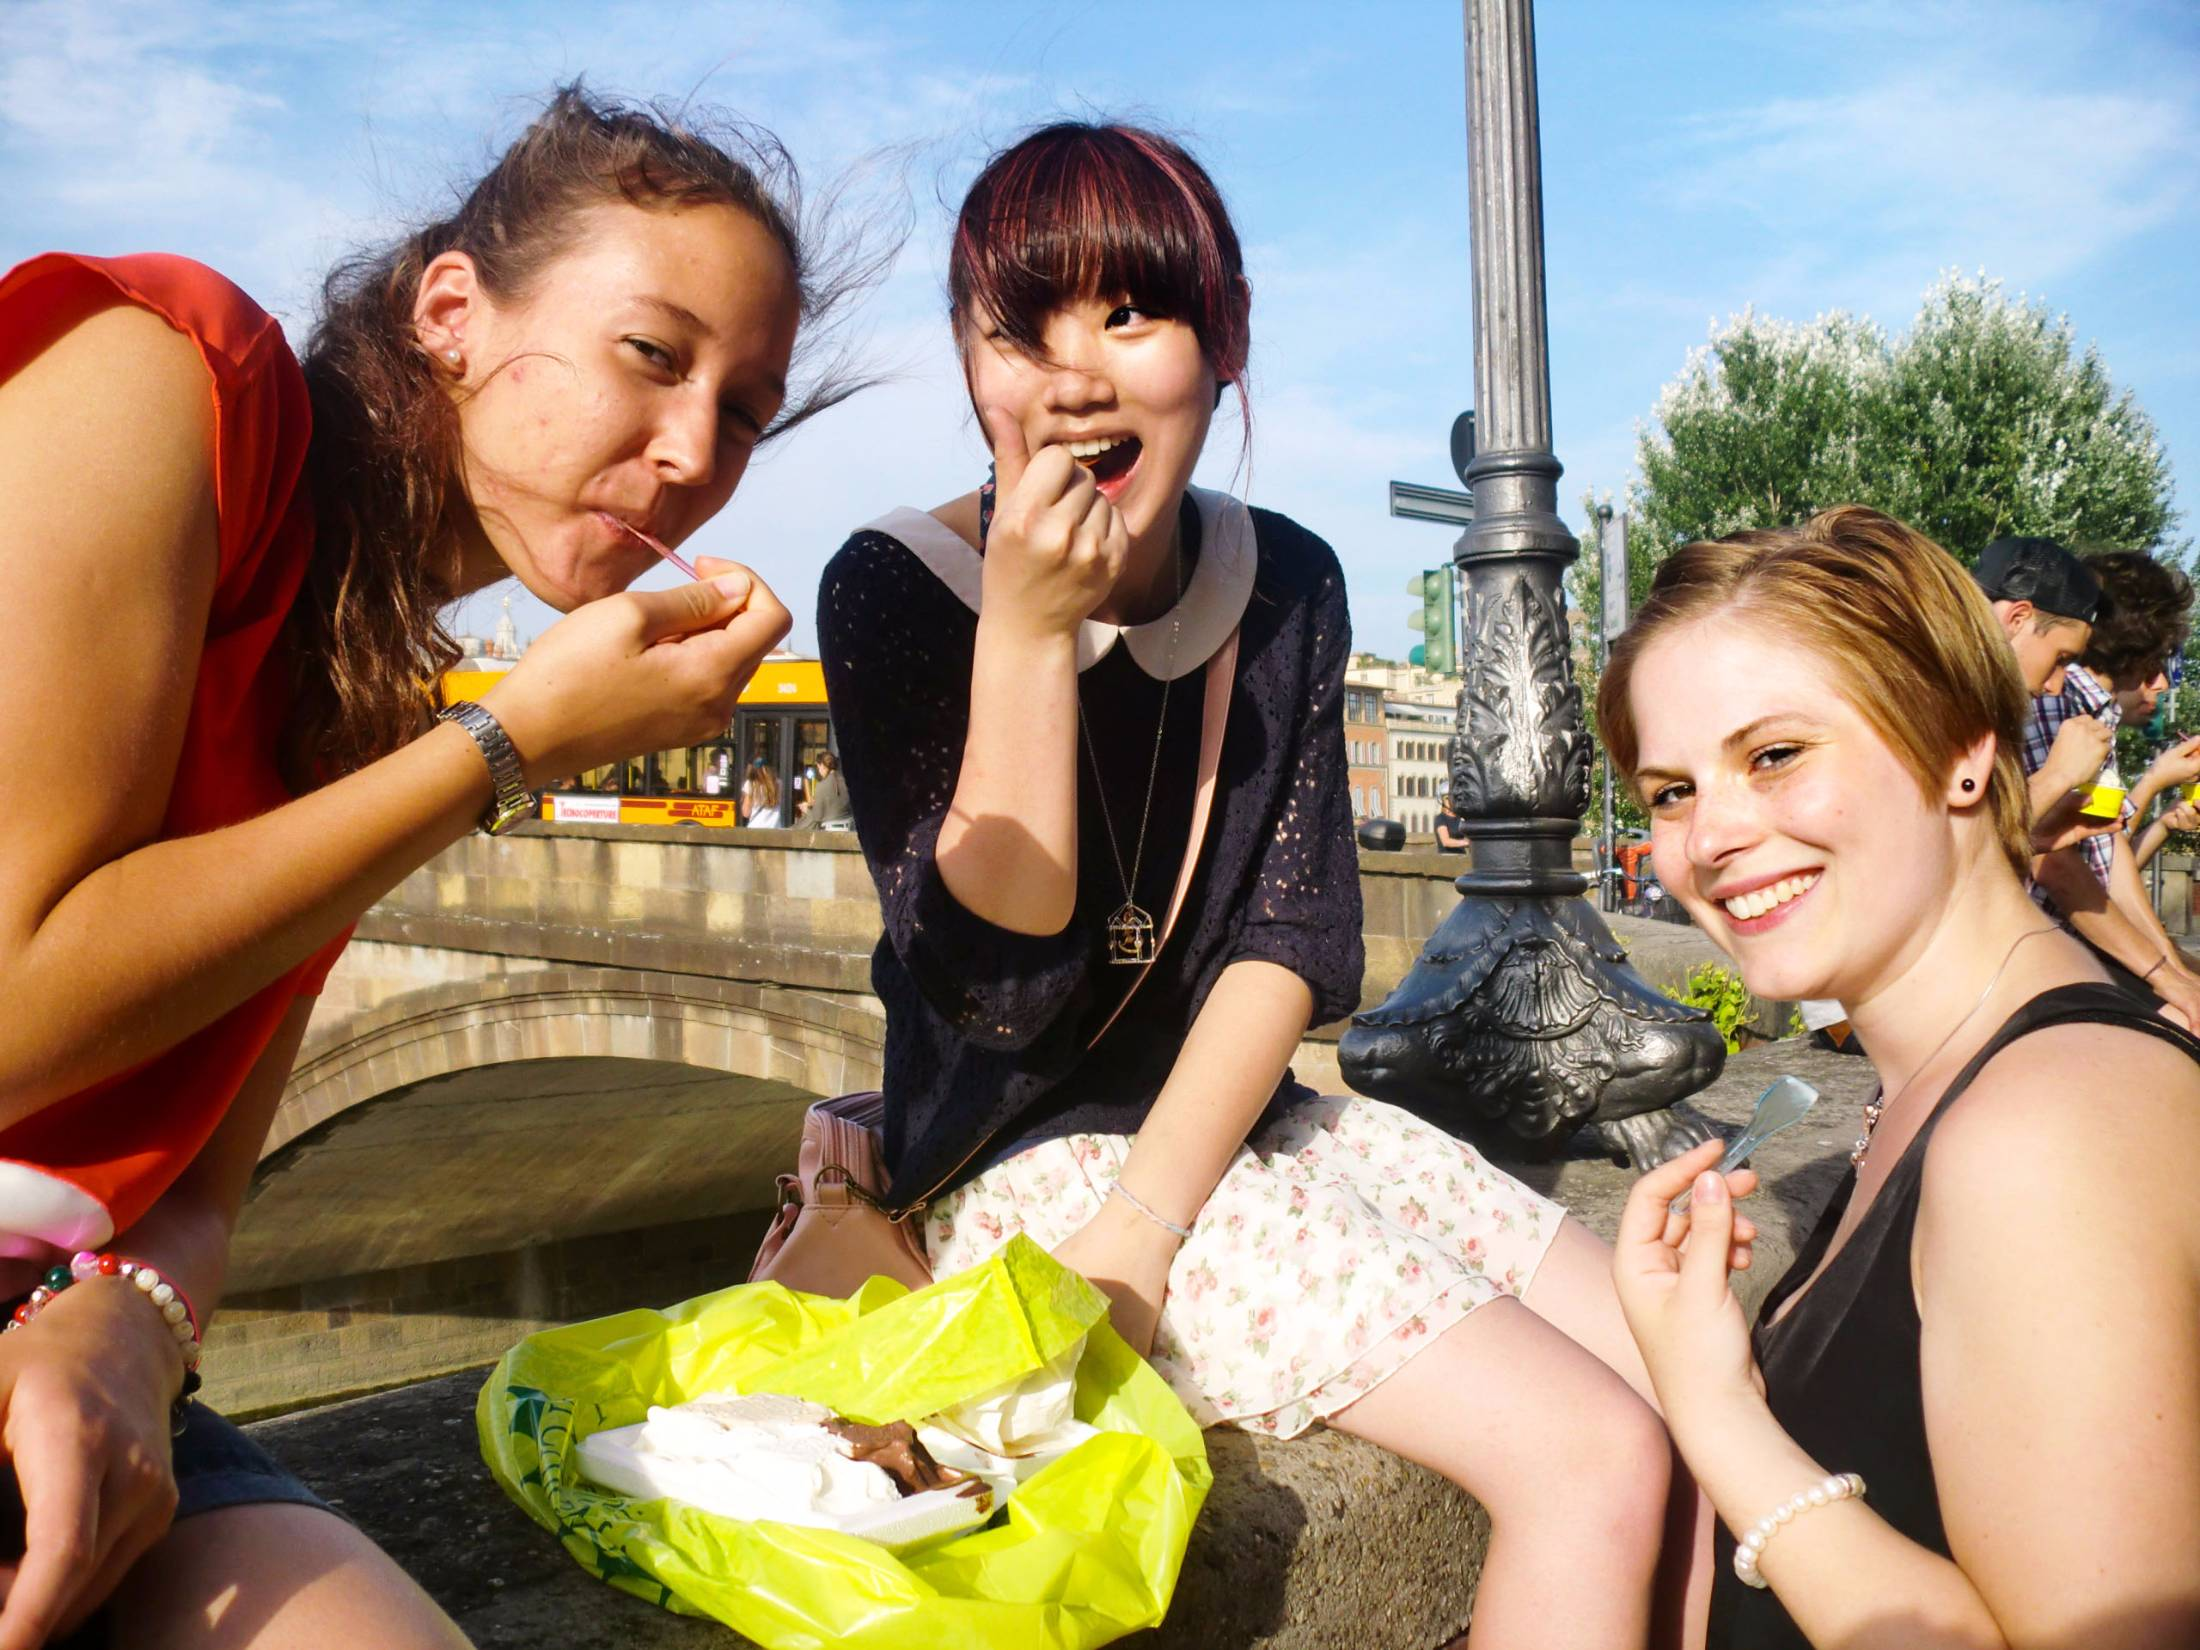 Teenagers arounf Florence learning italian and eating